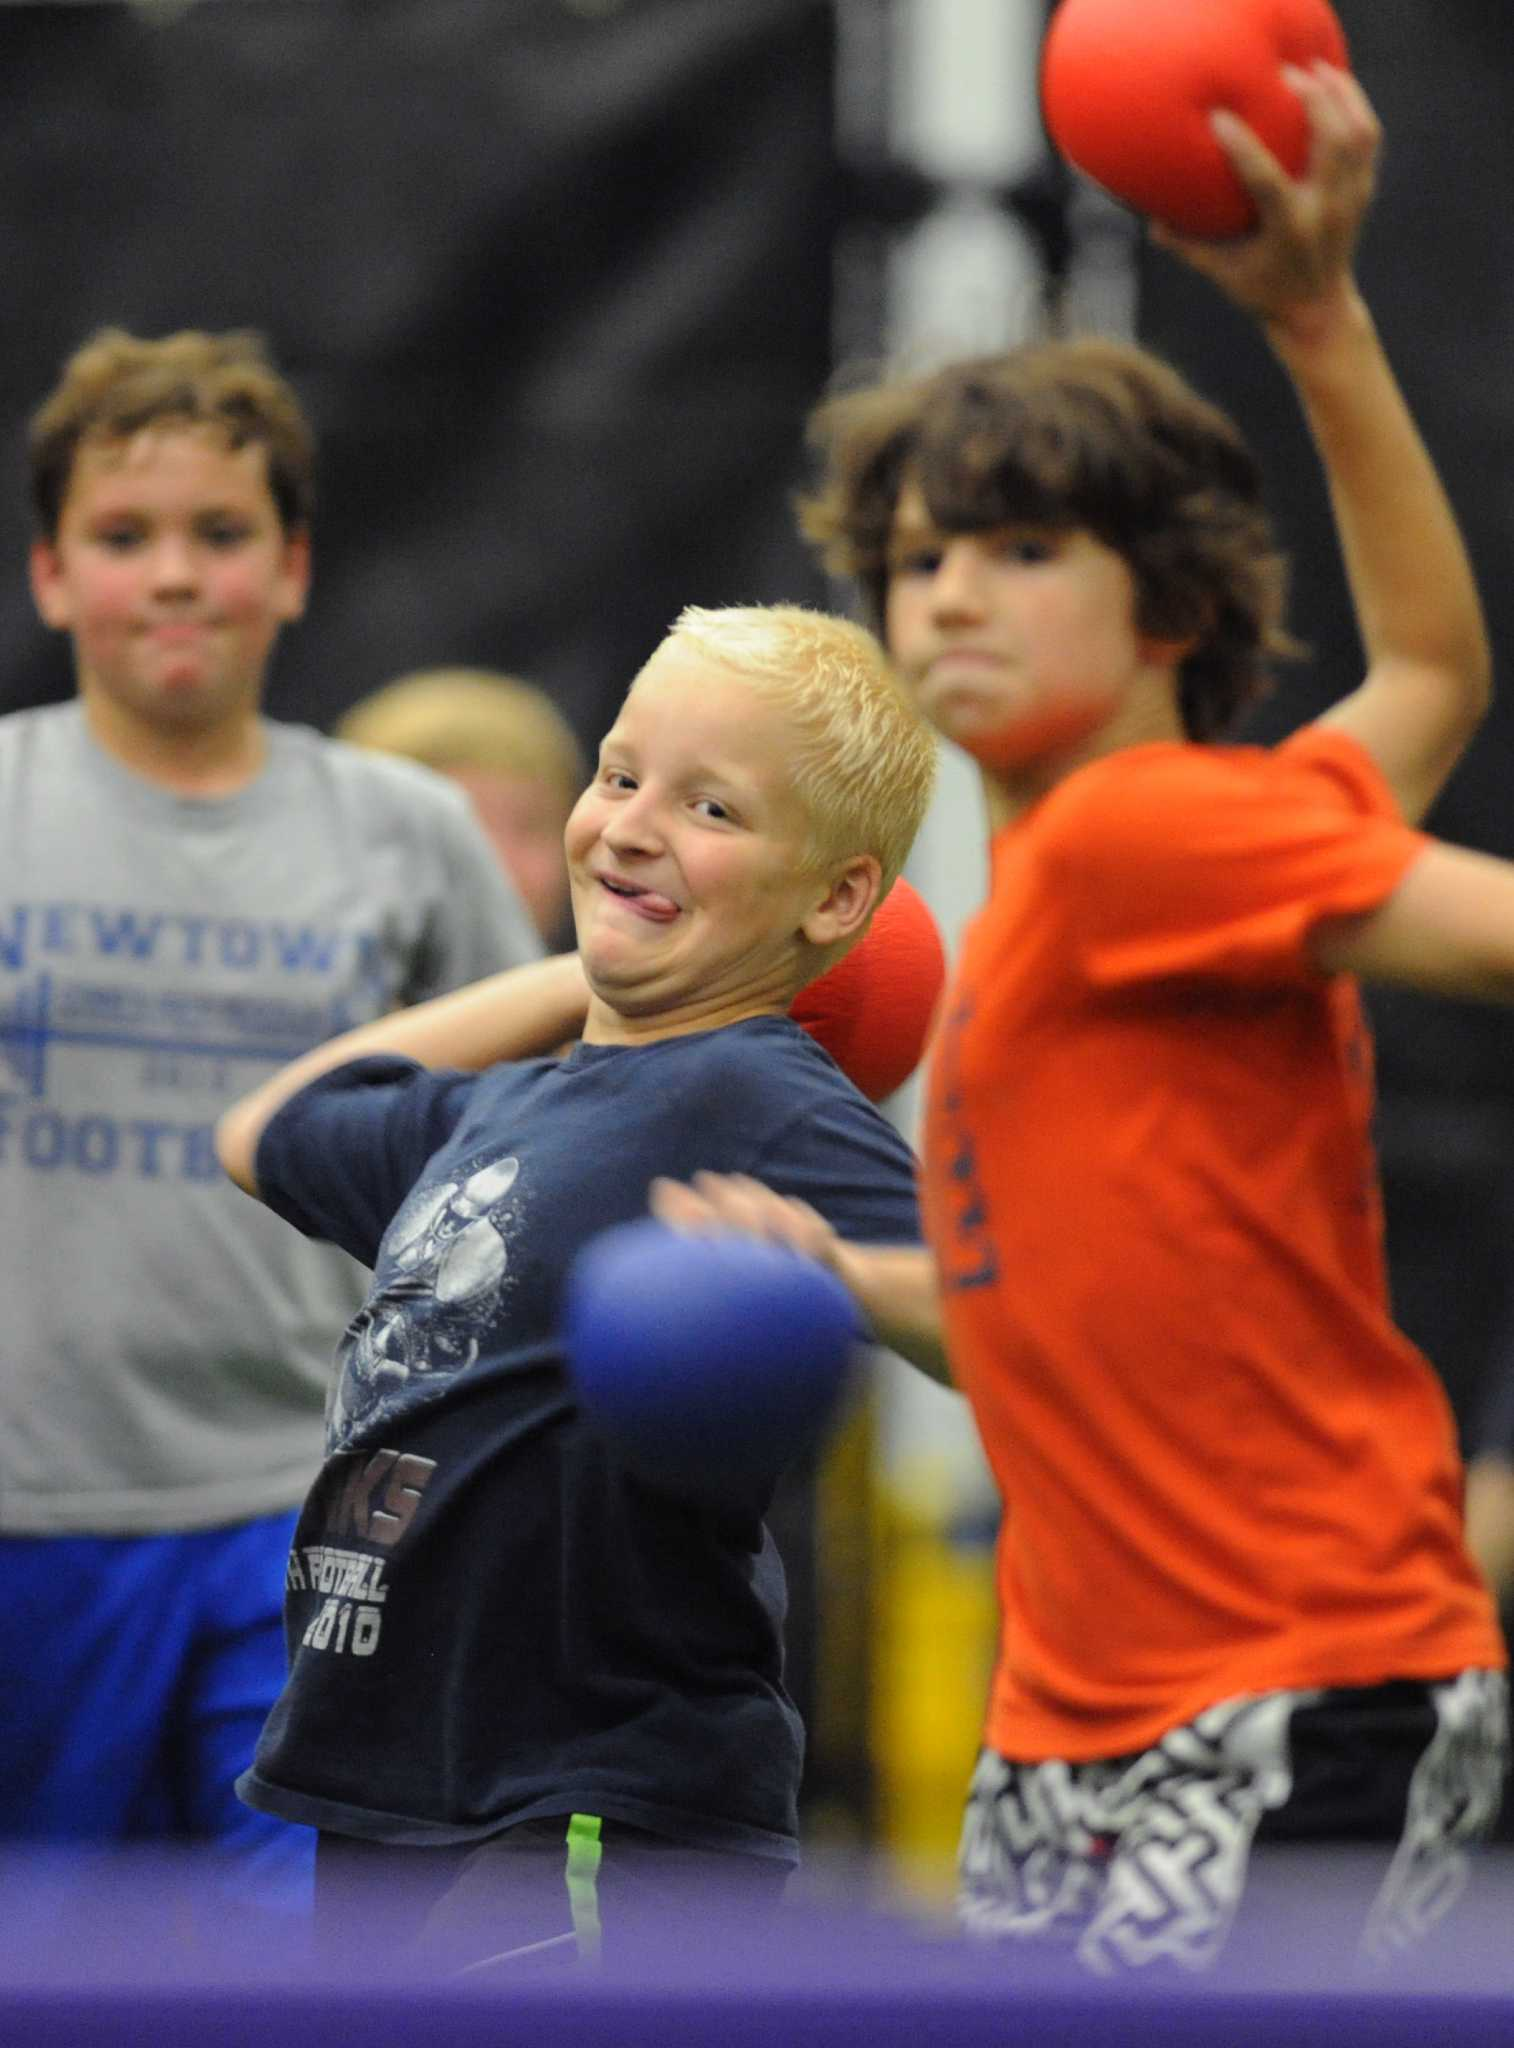 Dodge, duck, dip, dive and dodge -- for all ages - NewsTimes